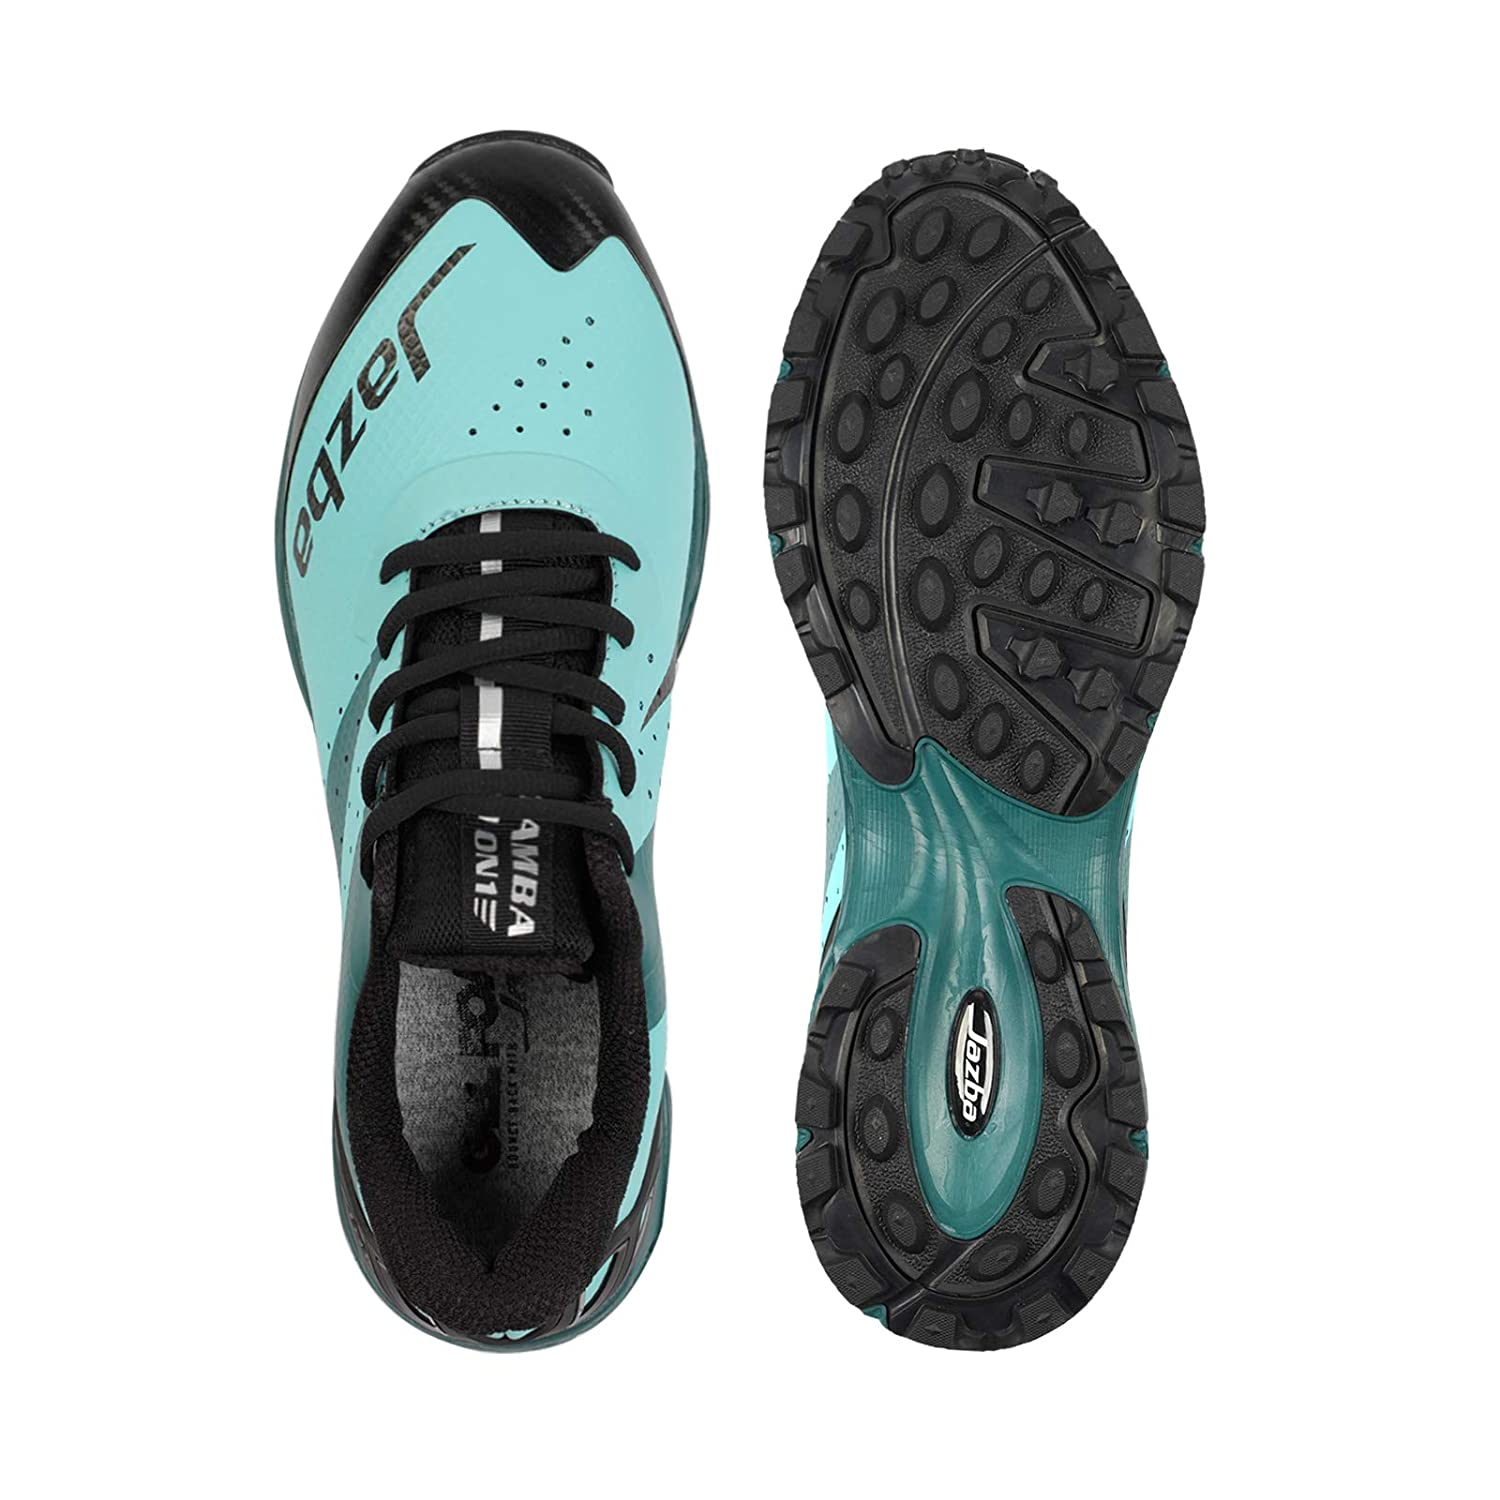 Excellent Traction Rubber Cleats Comfortable Sneakers Jazba Field Hockey Shoes Women Men Mamba ONE Turf Shoe Best for Outdoor Sports Cricket Softball Baseball Lacrosse